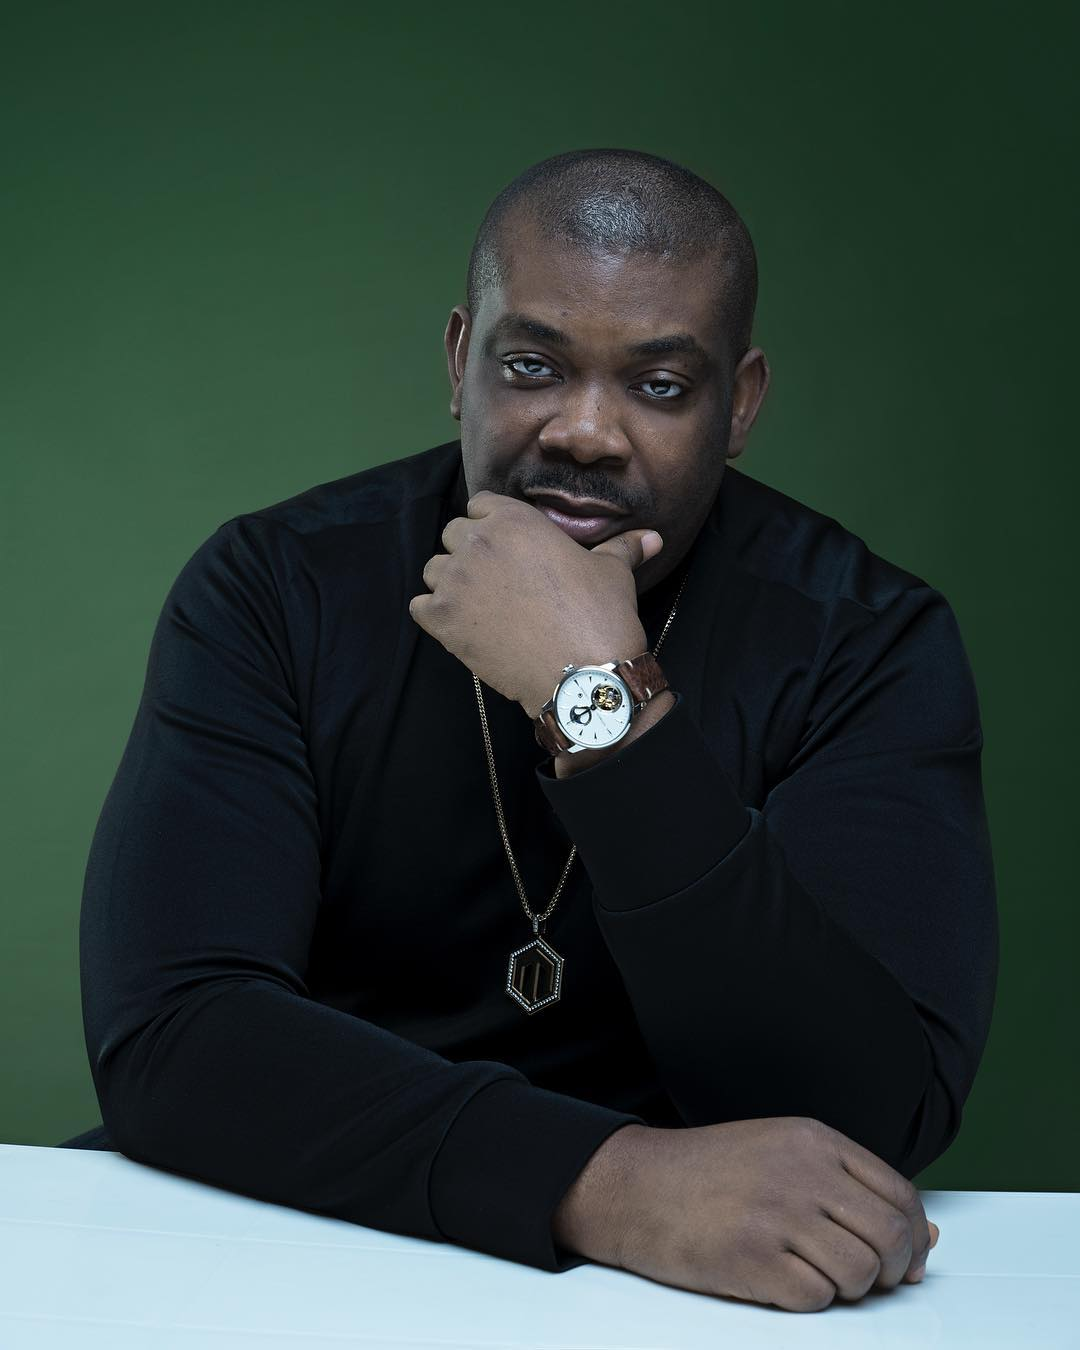 Hilarious drawing of Don Jazzy that makes him want to Compensate artist